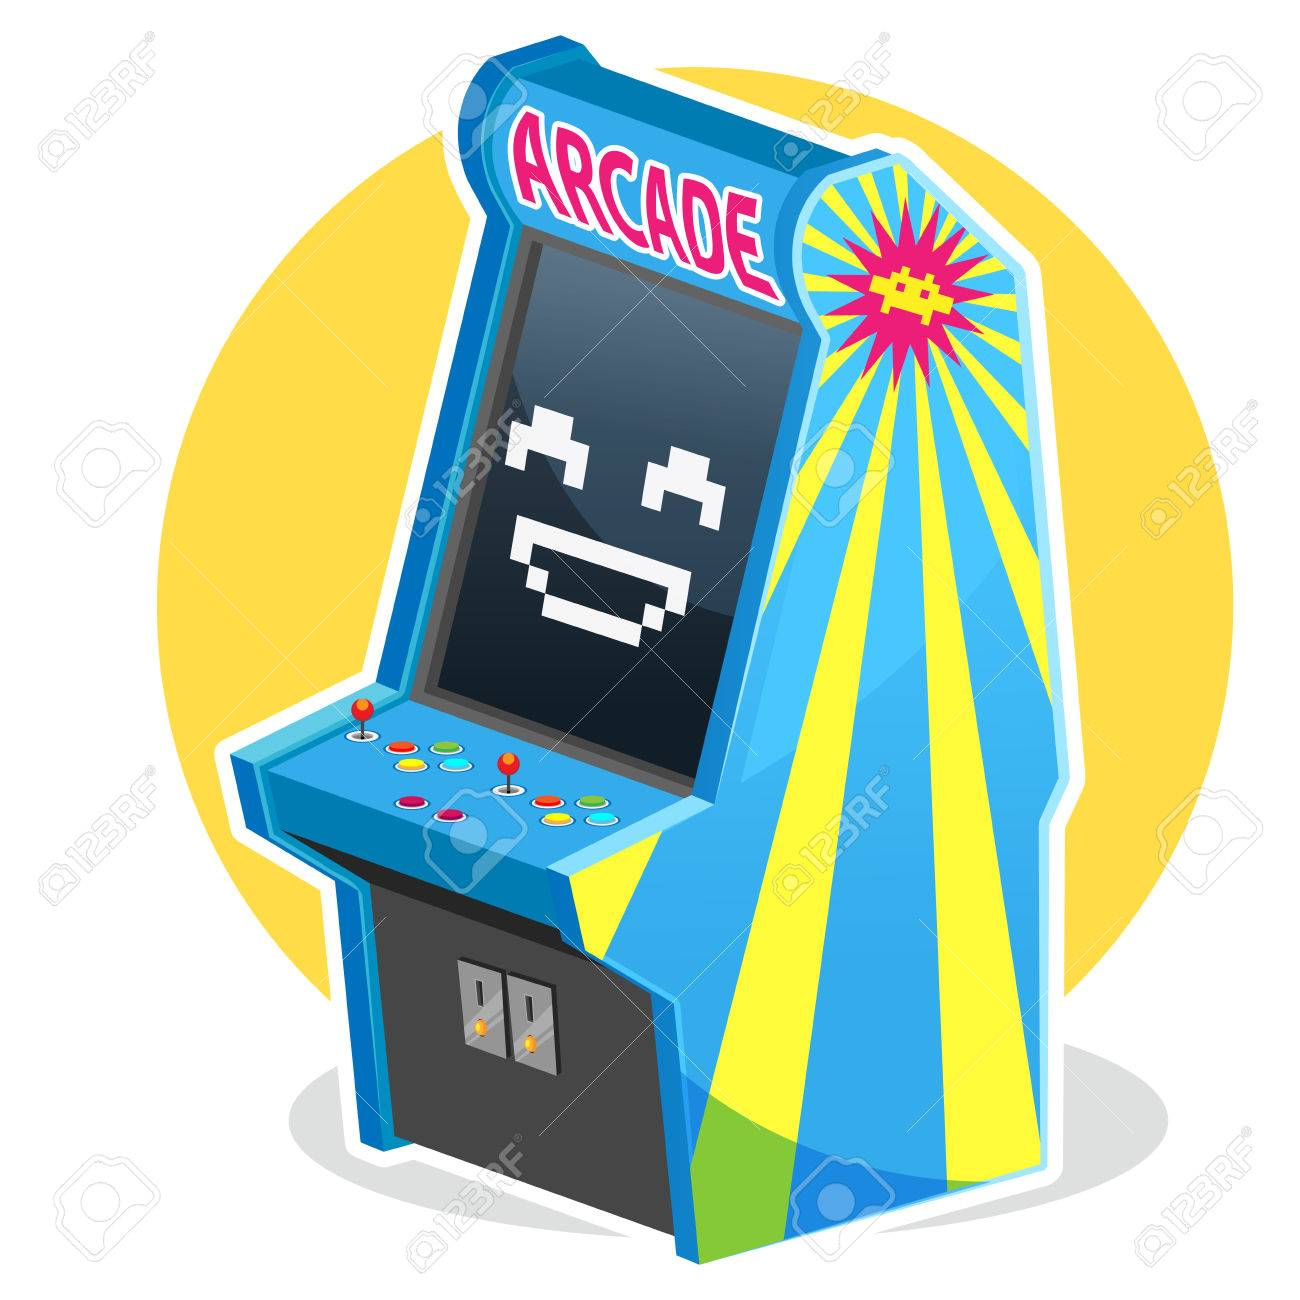 Blue Vintage Arcade Machine Game Royalty Free Cliparts, Vectors ...